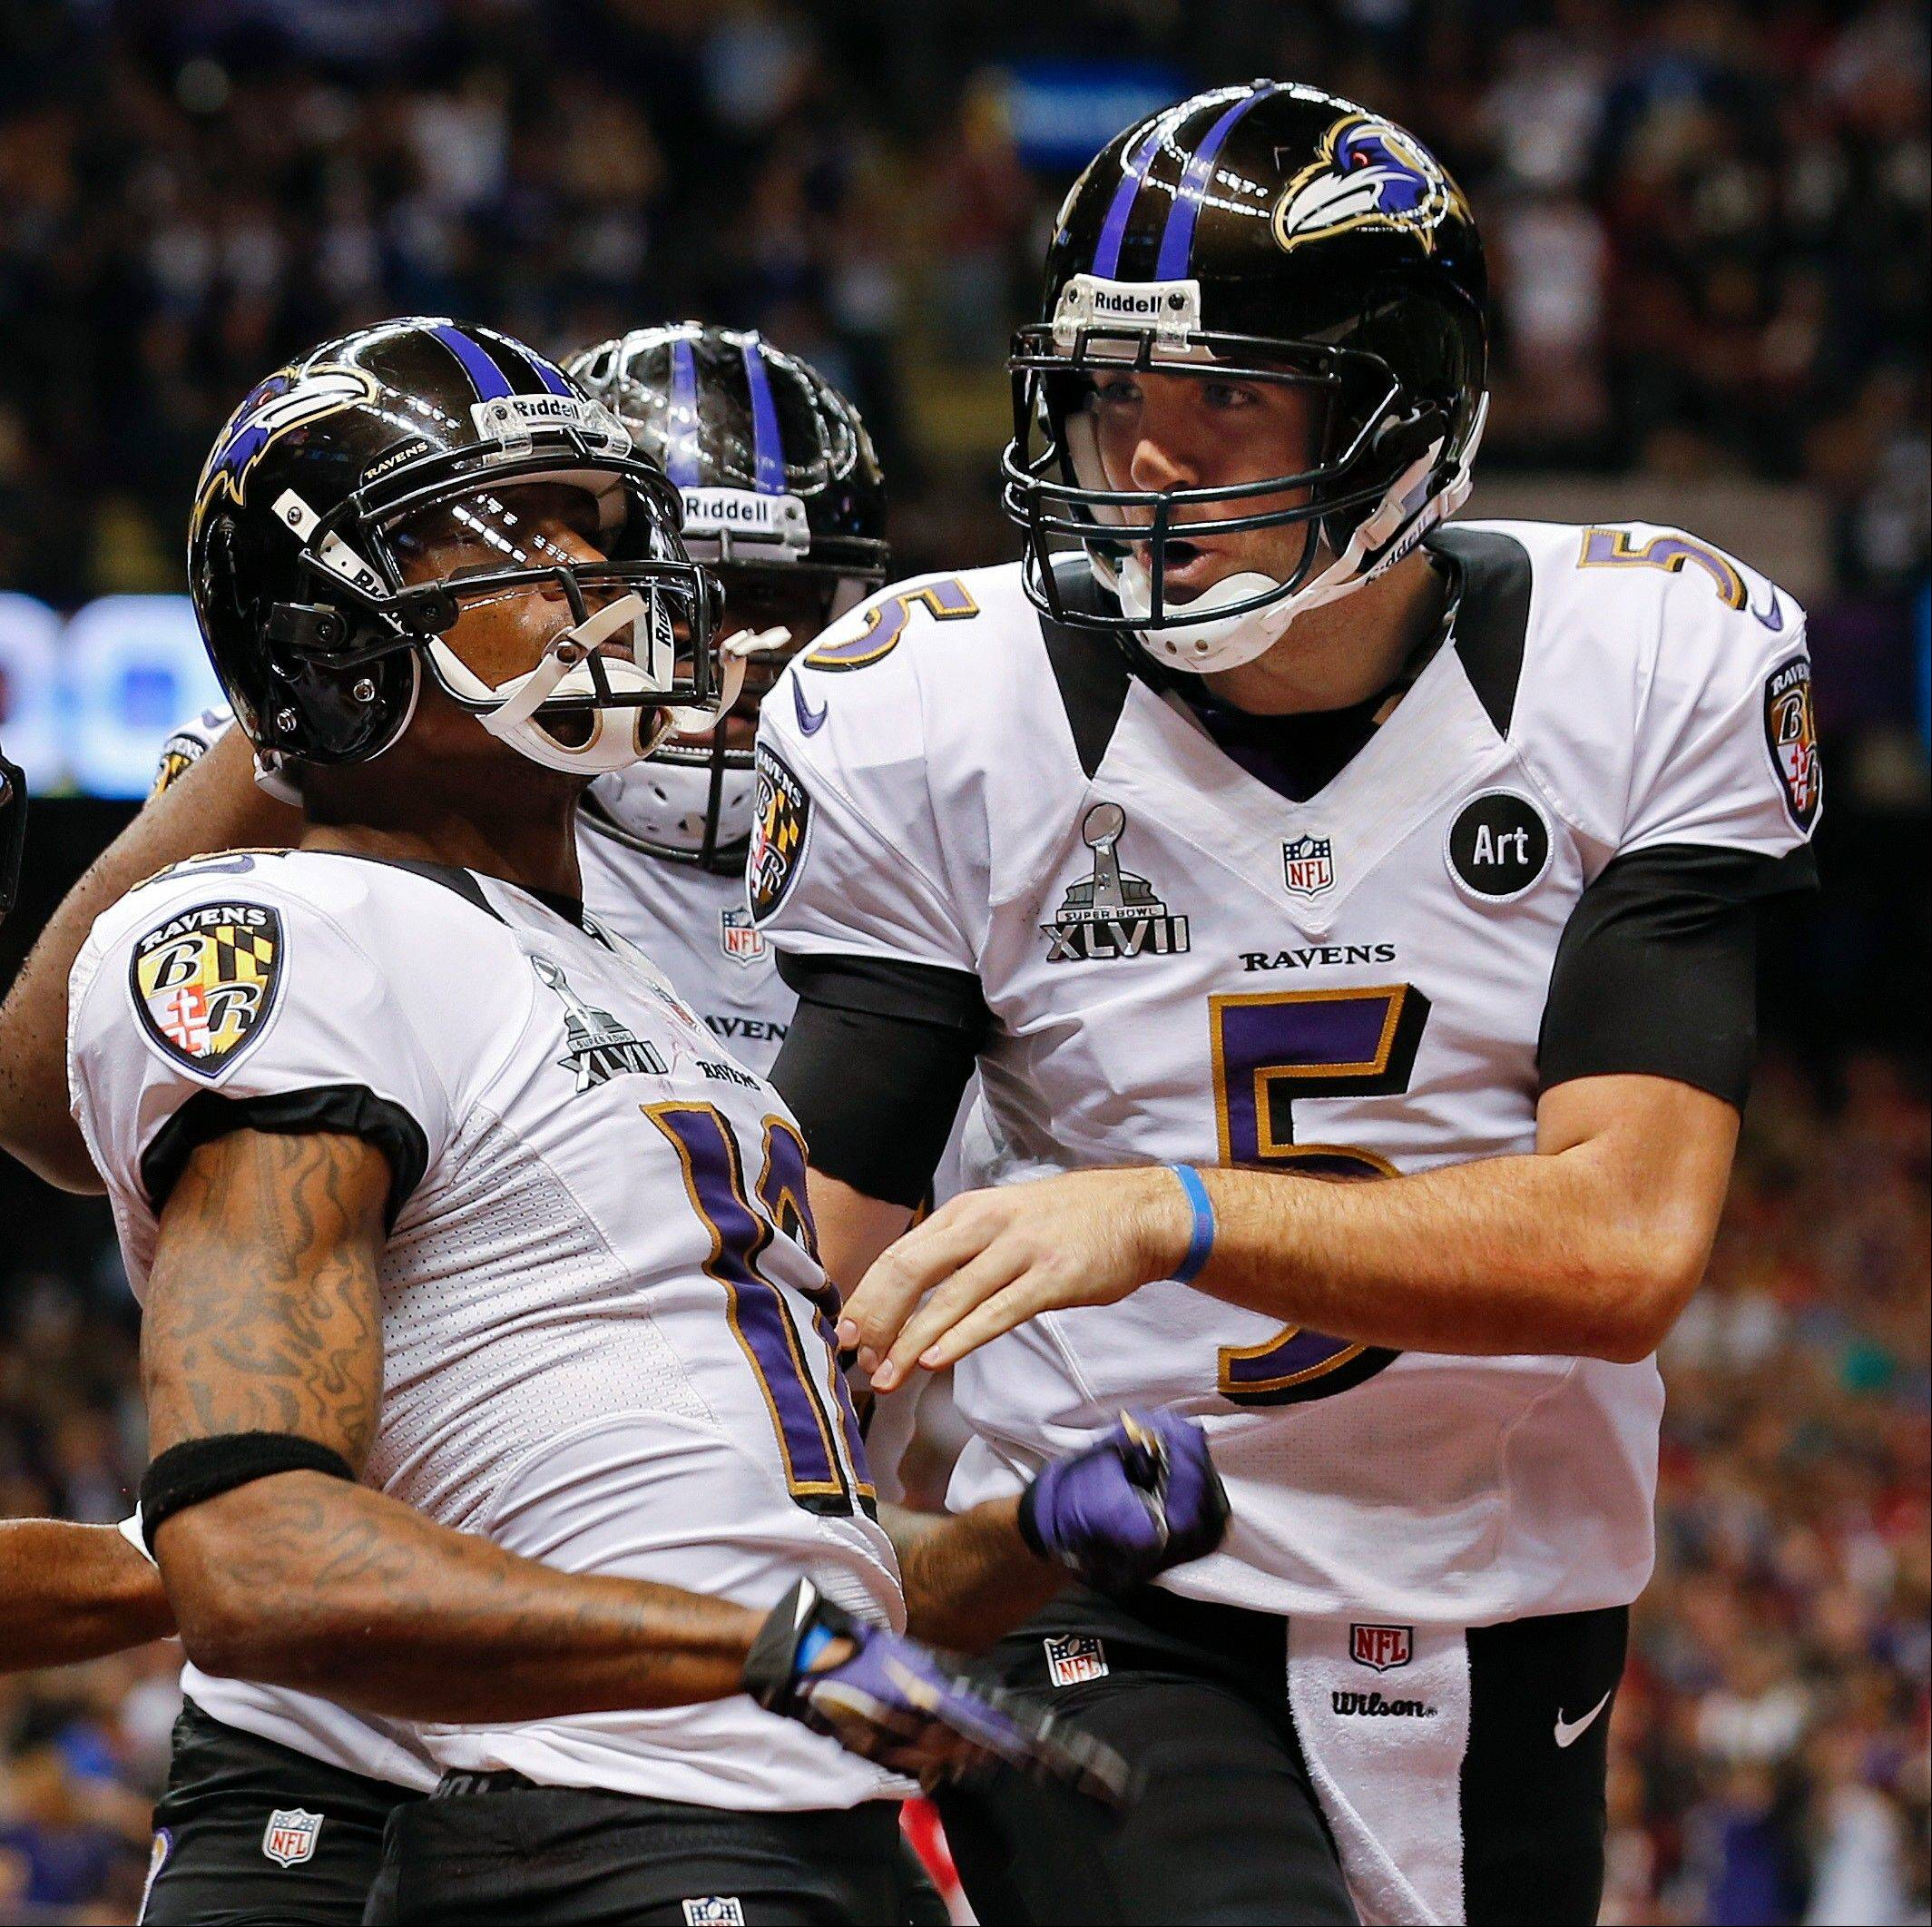 Baltimore Ravens quarterback Joe Flacco (5) congratulates wide receiver Jacoby Jones (12) after Jones caught a touchdown pass in the second quarter.